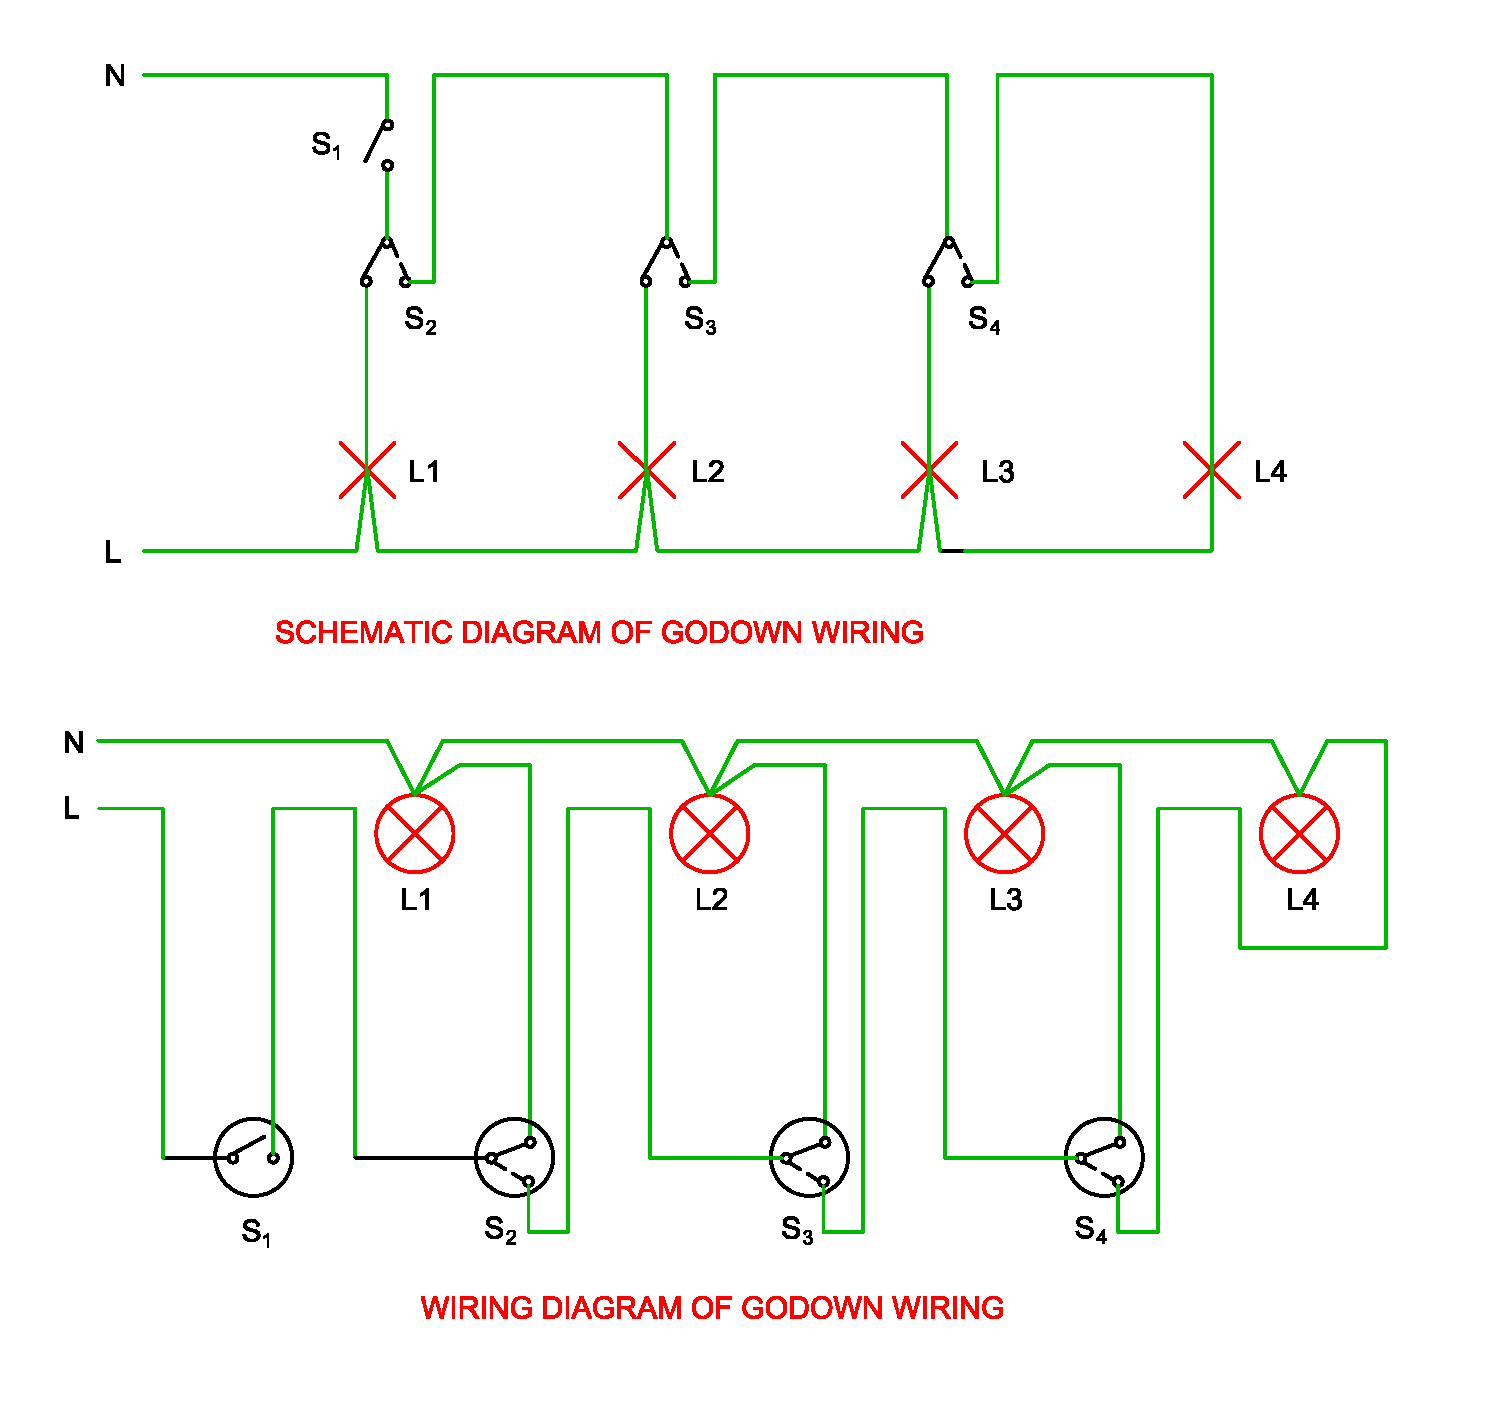 medium resolution of schematic and wiring diagram of go down wiring